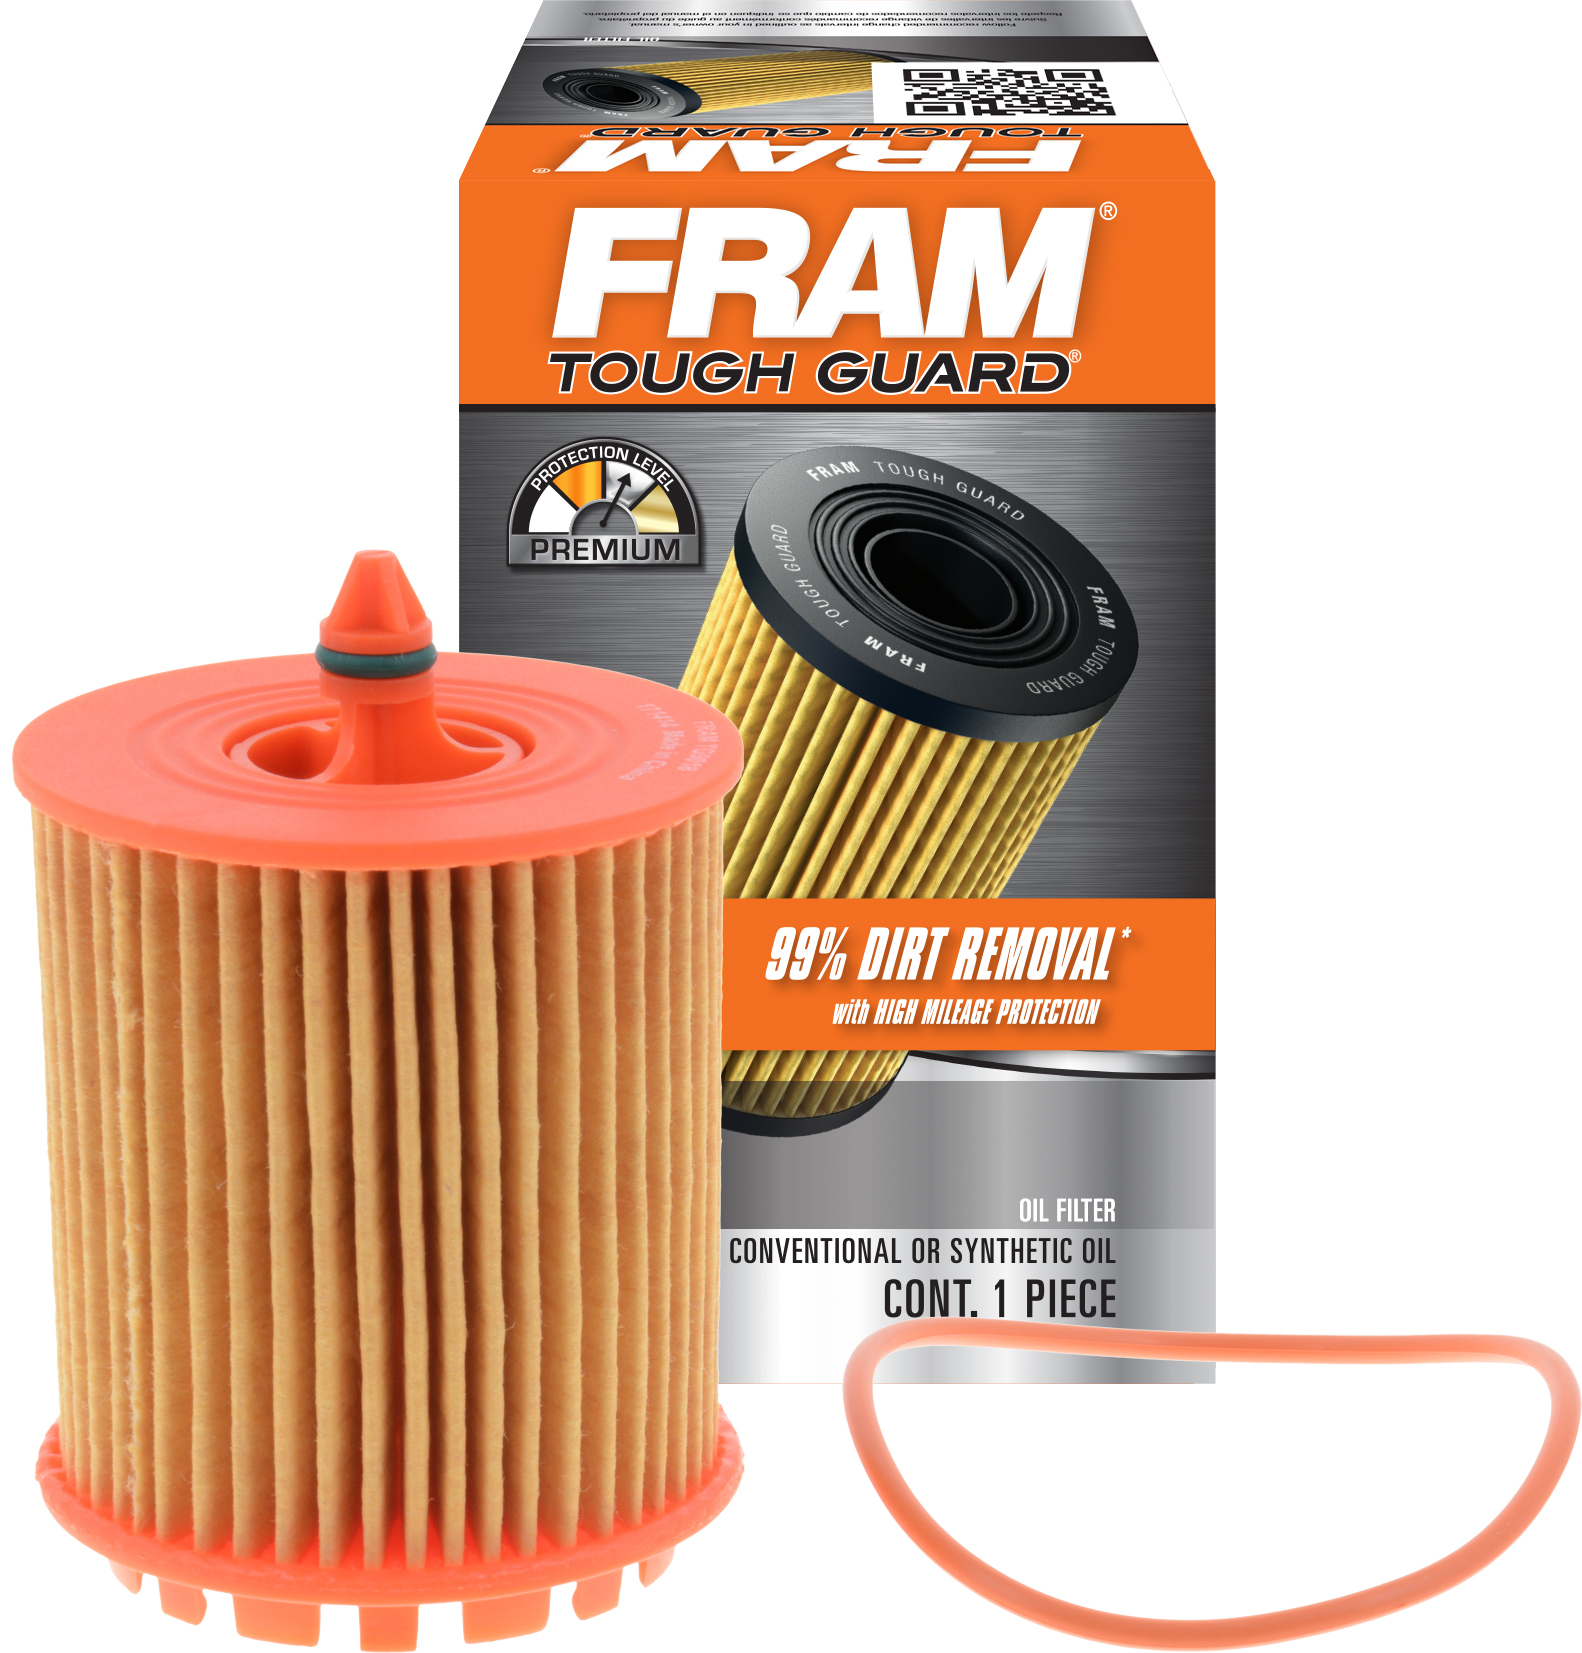 FRAM Tough Guard Oil Filter, TG9018